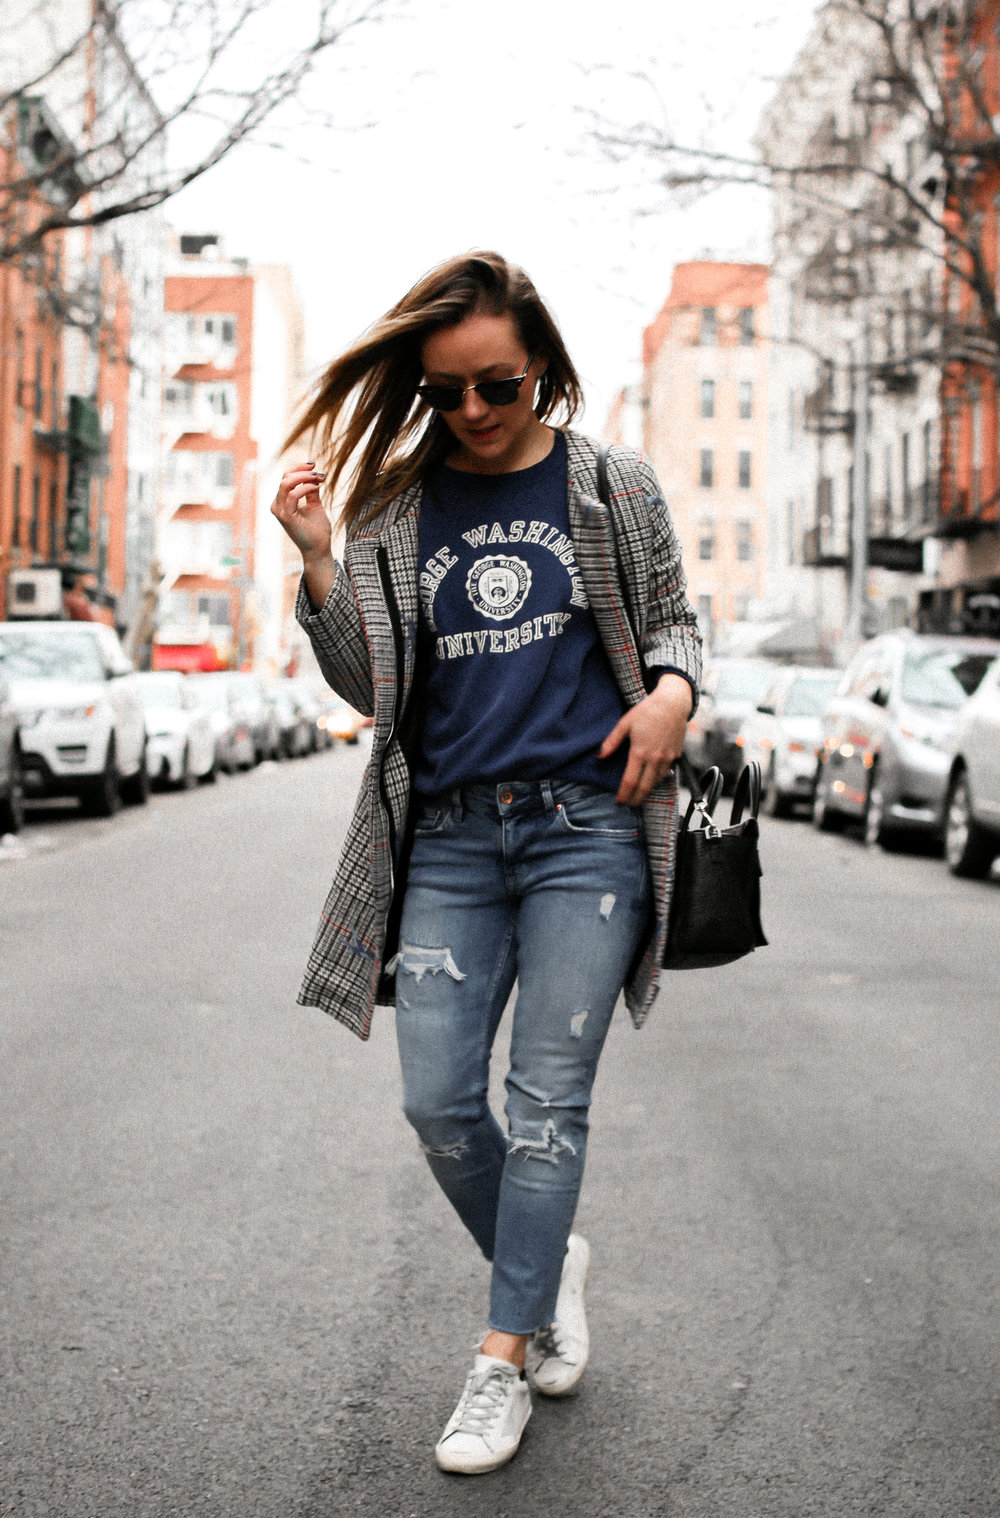 fizz-fade-graphic-sweatshirt-8.jpg